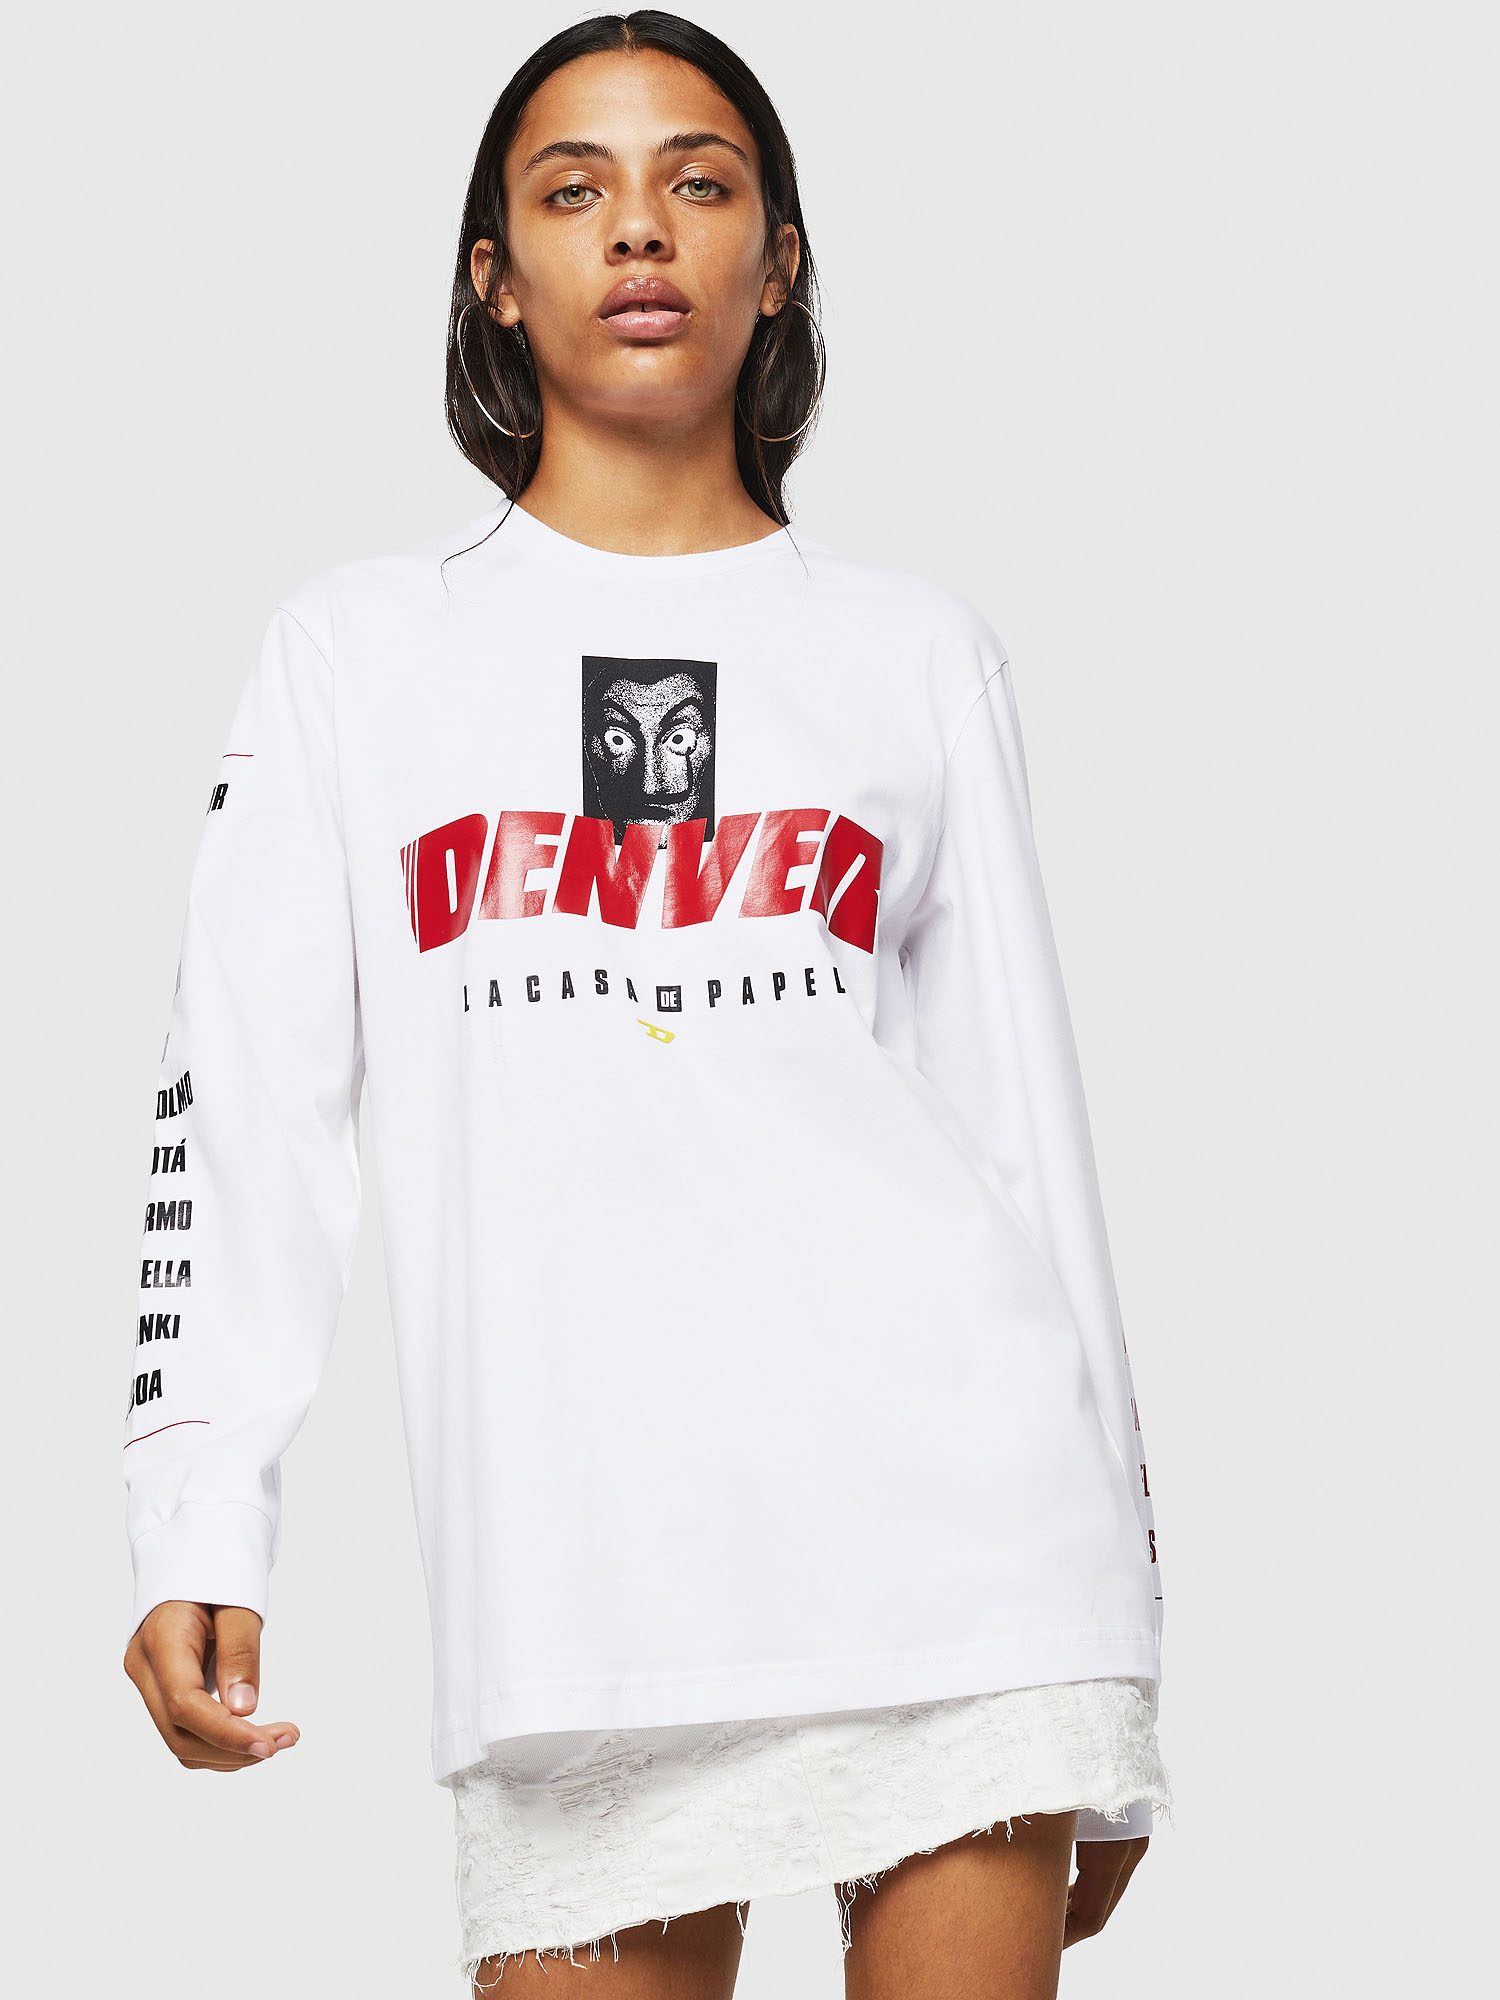 Diesel - LCP-T-JUST-LS-DENVER,  - T-Shirts - Image 2